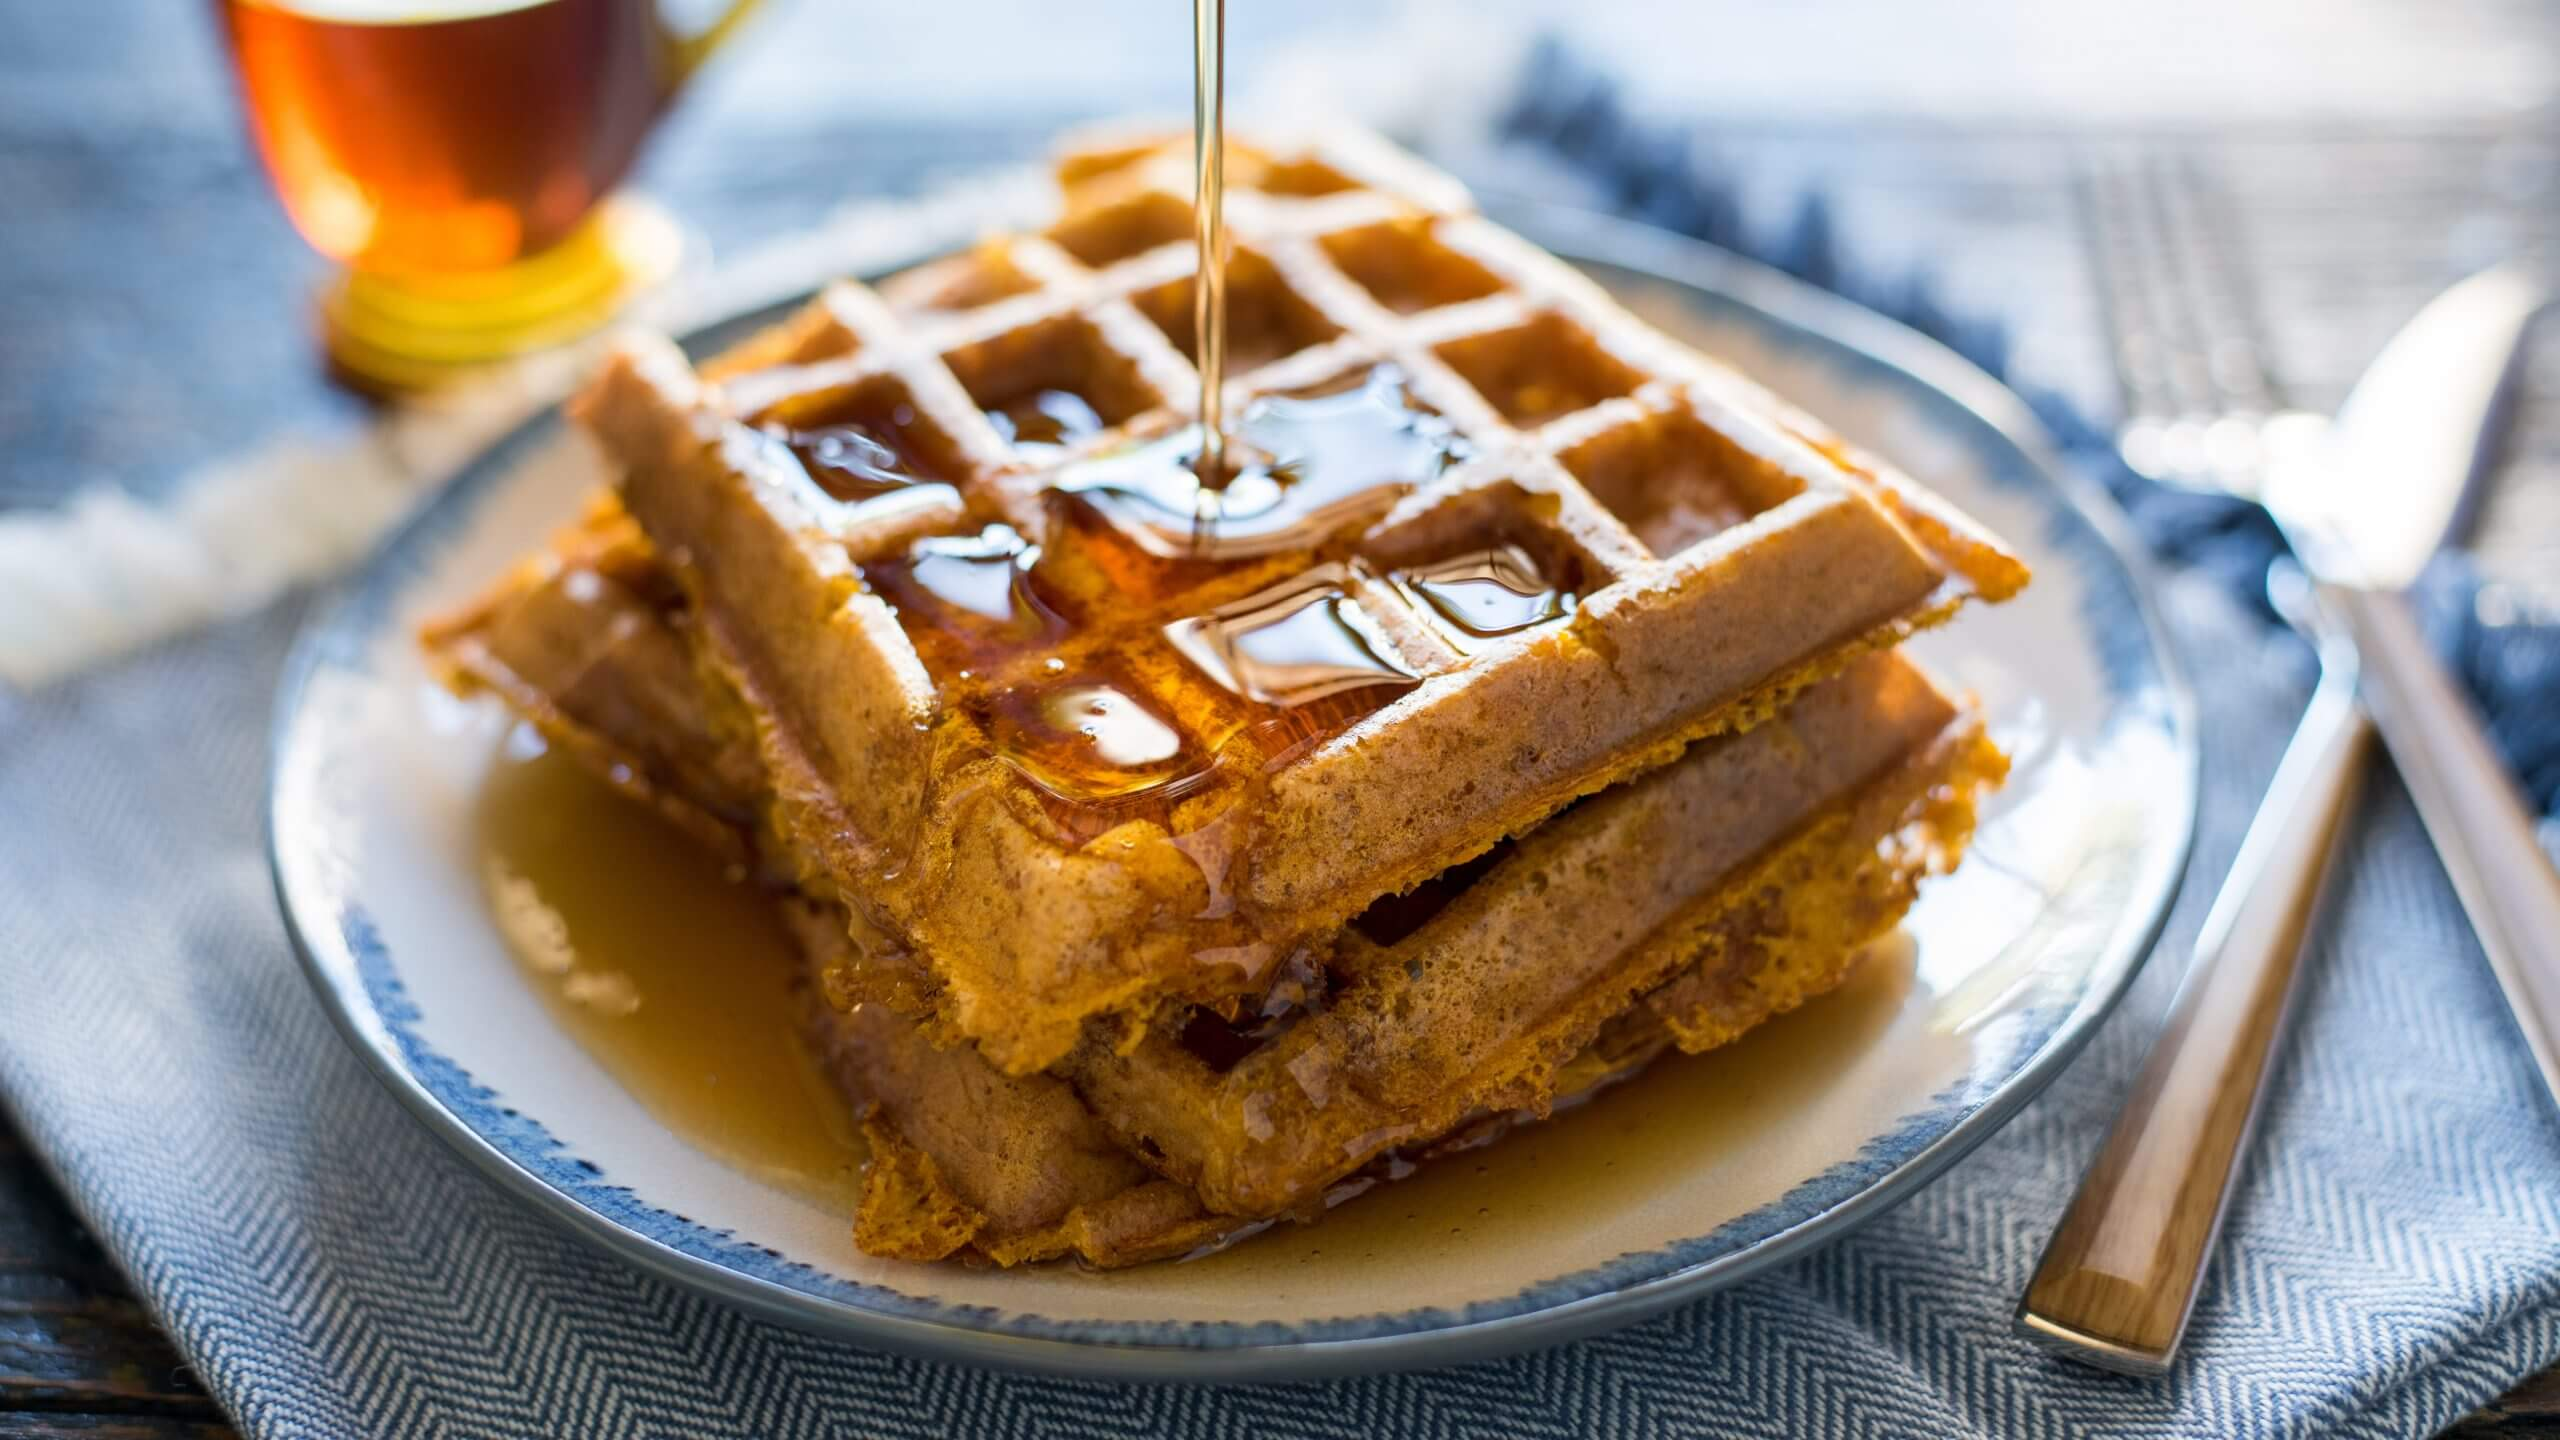 A close-up of freshly made, crispy waffles being doused in in silky syrup.